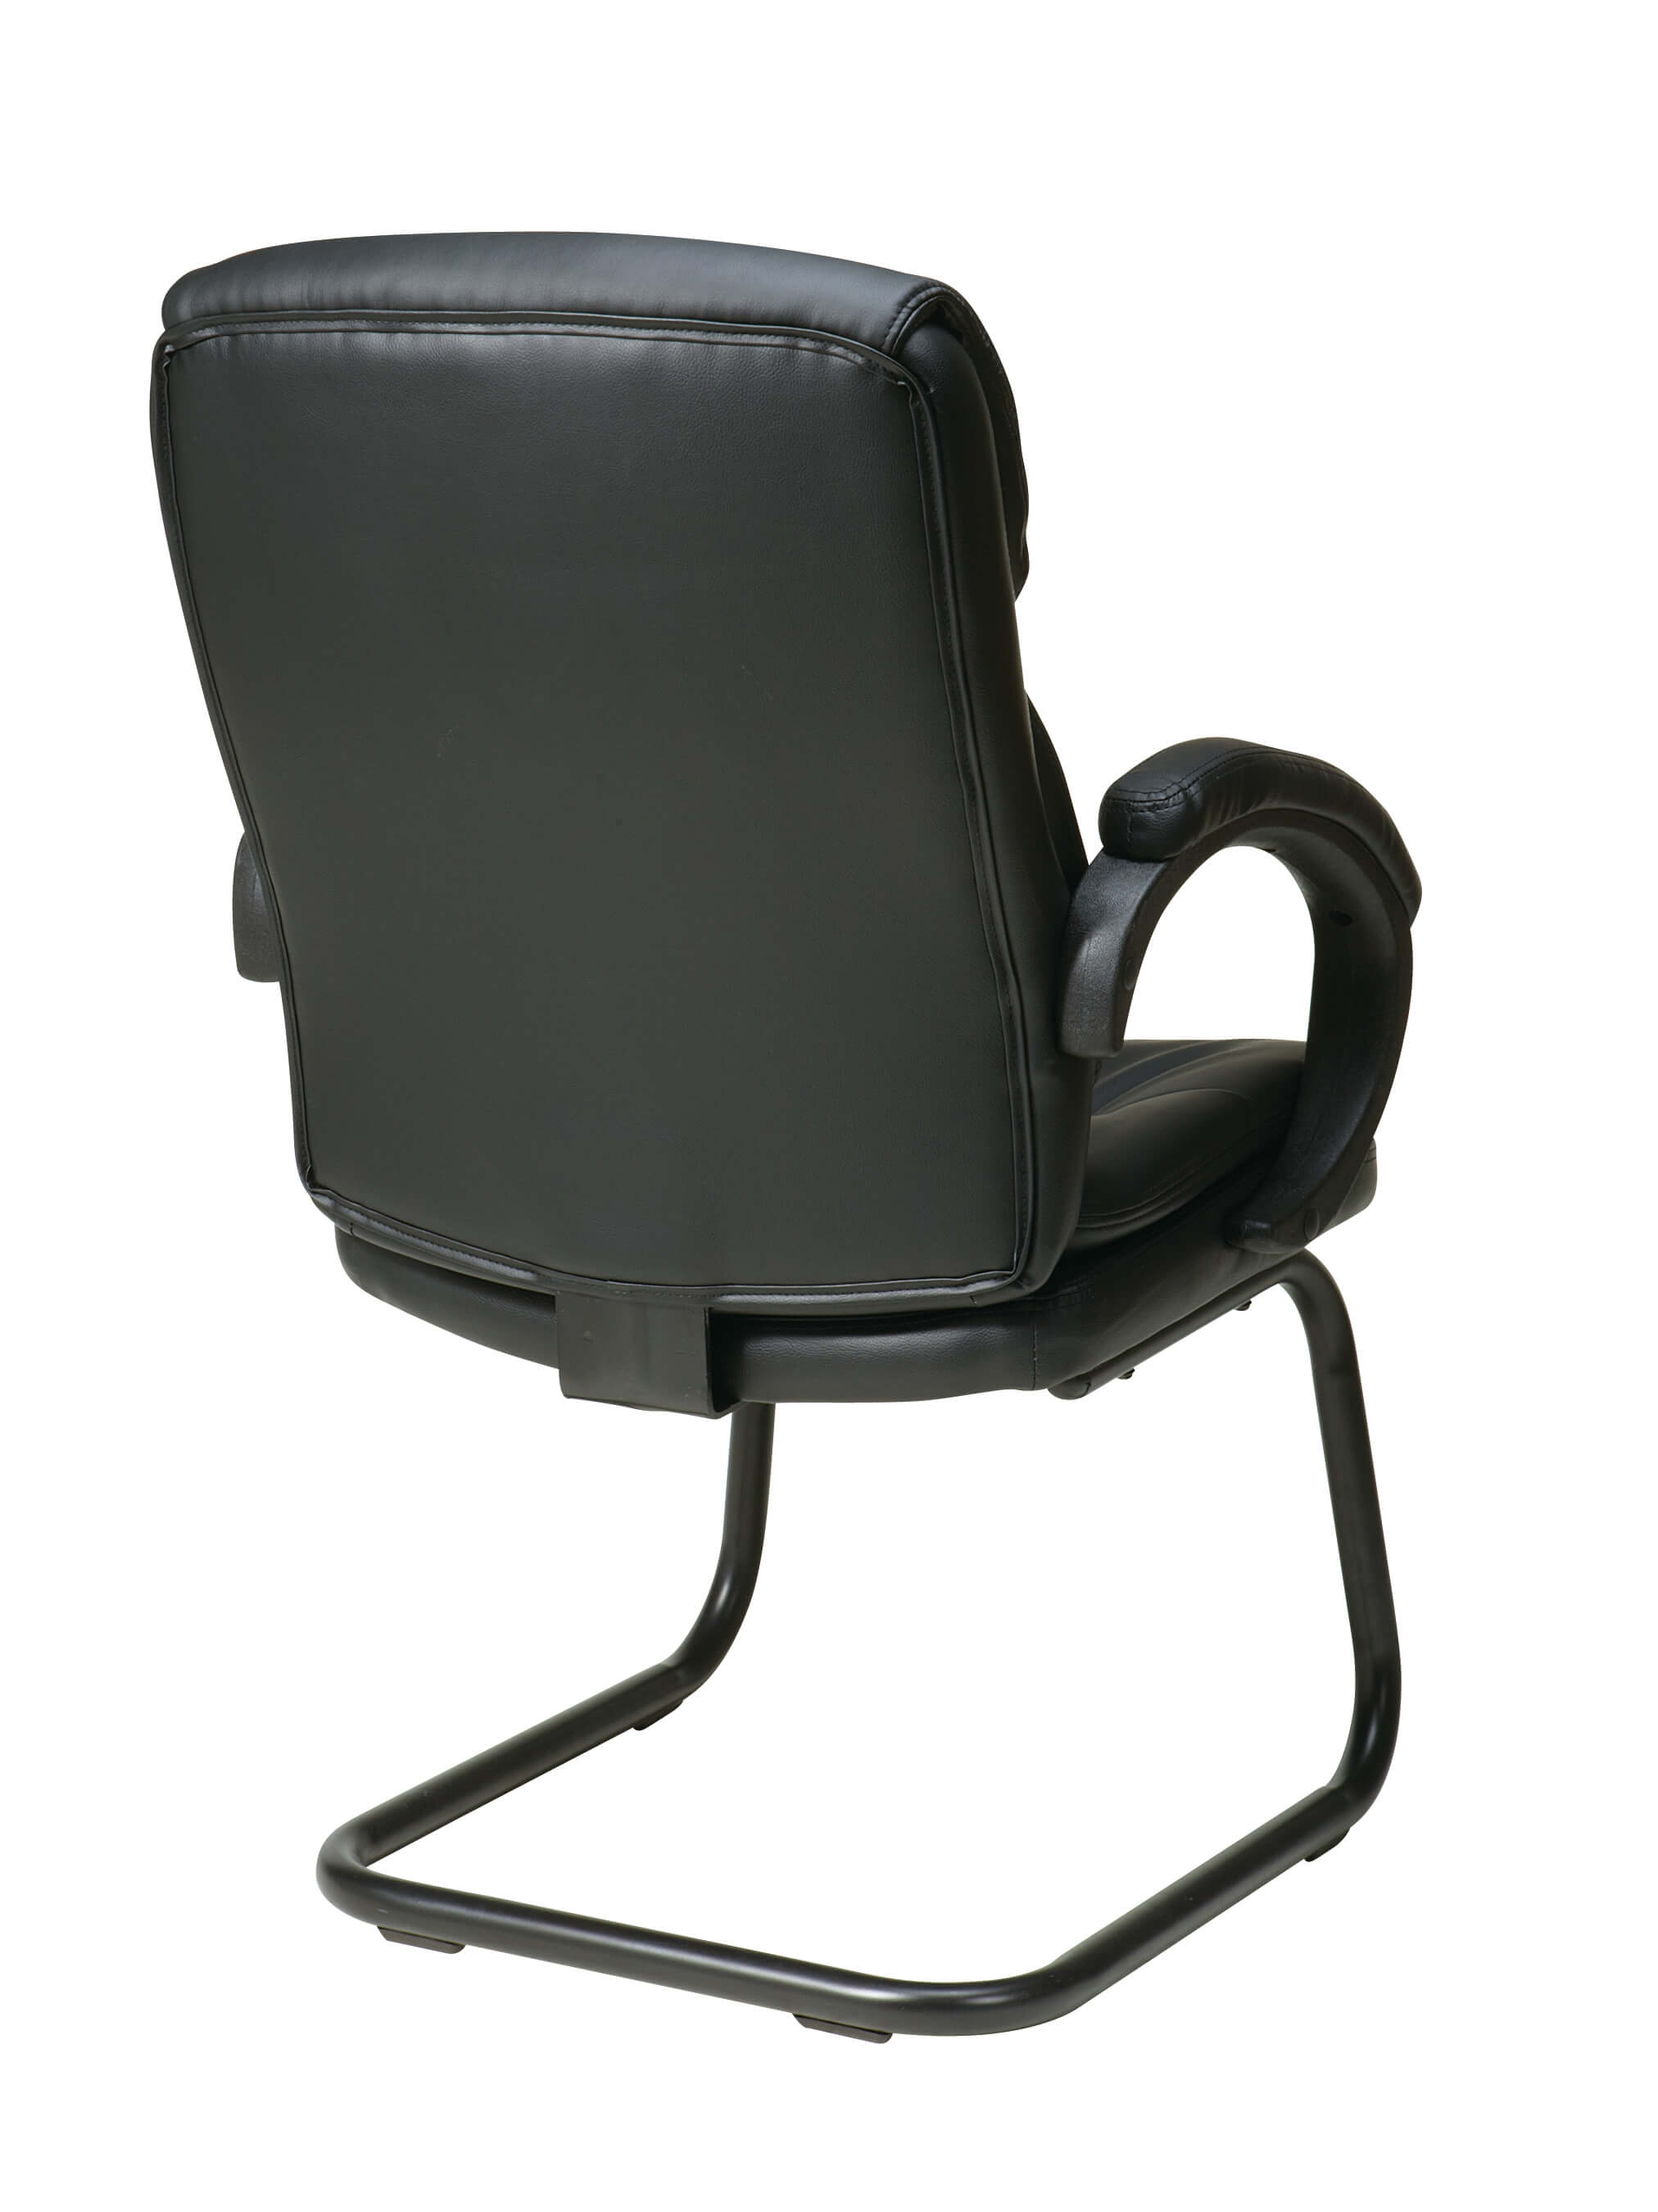 Black leather office chair back